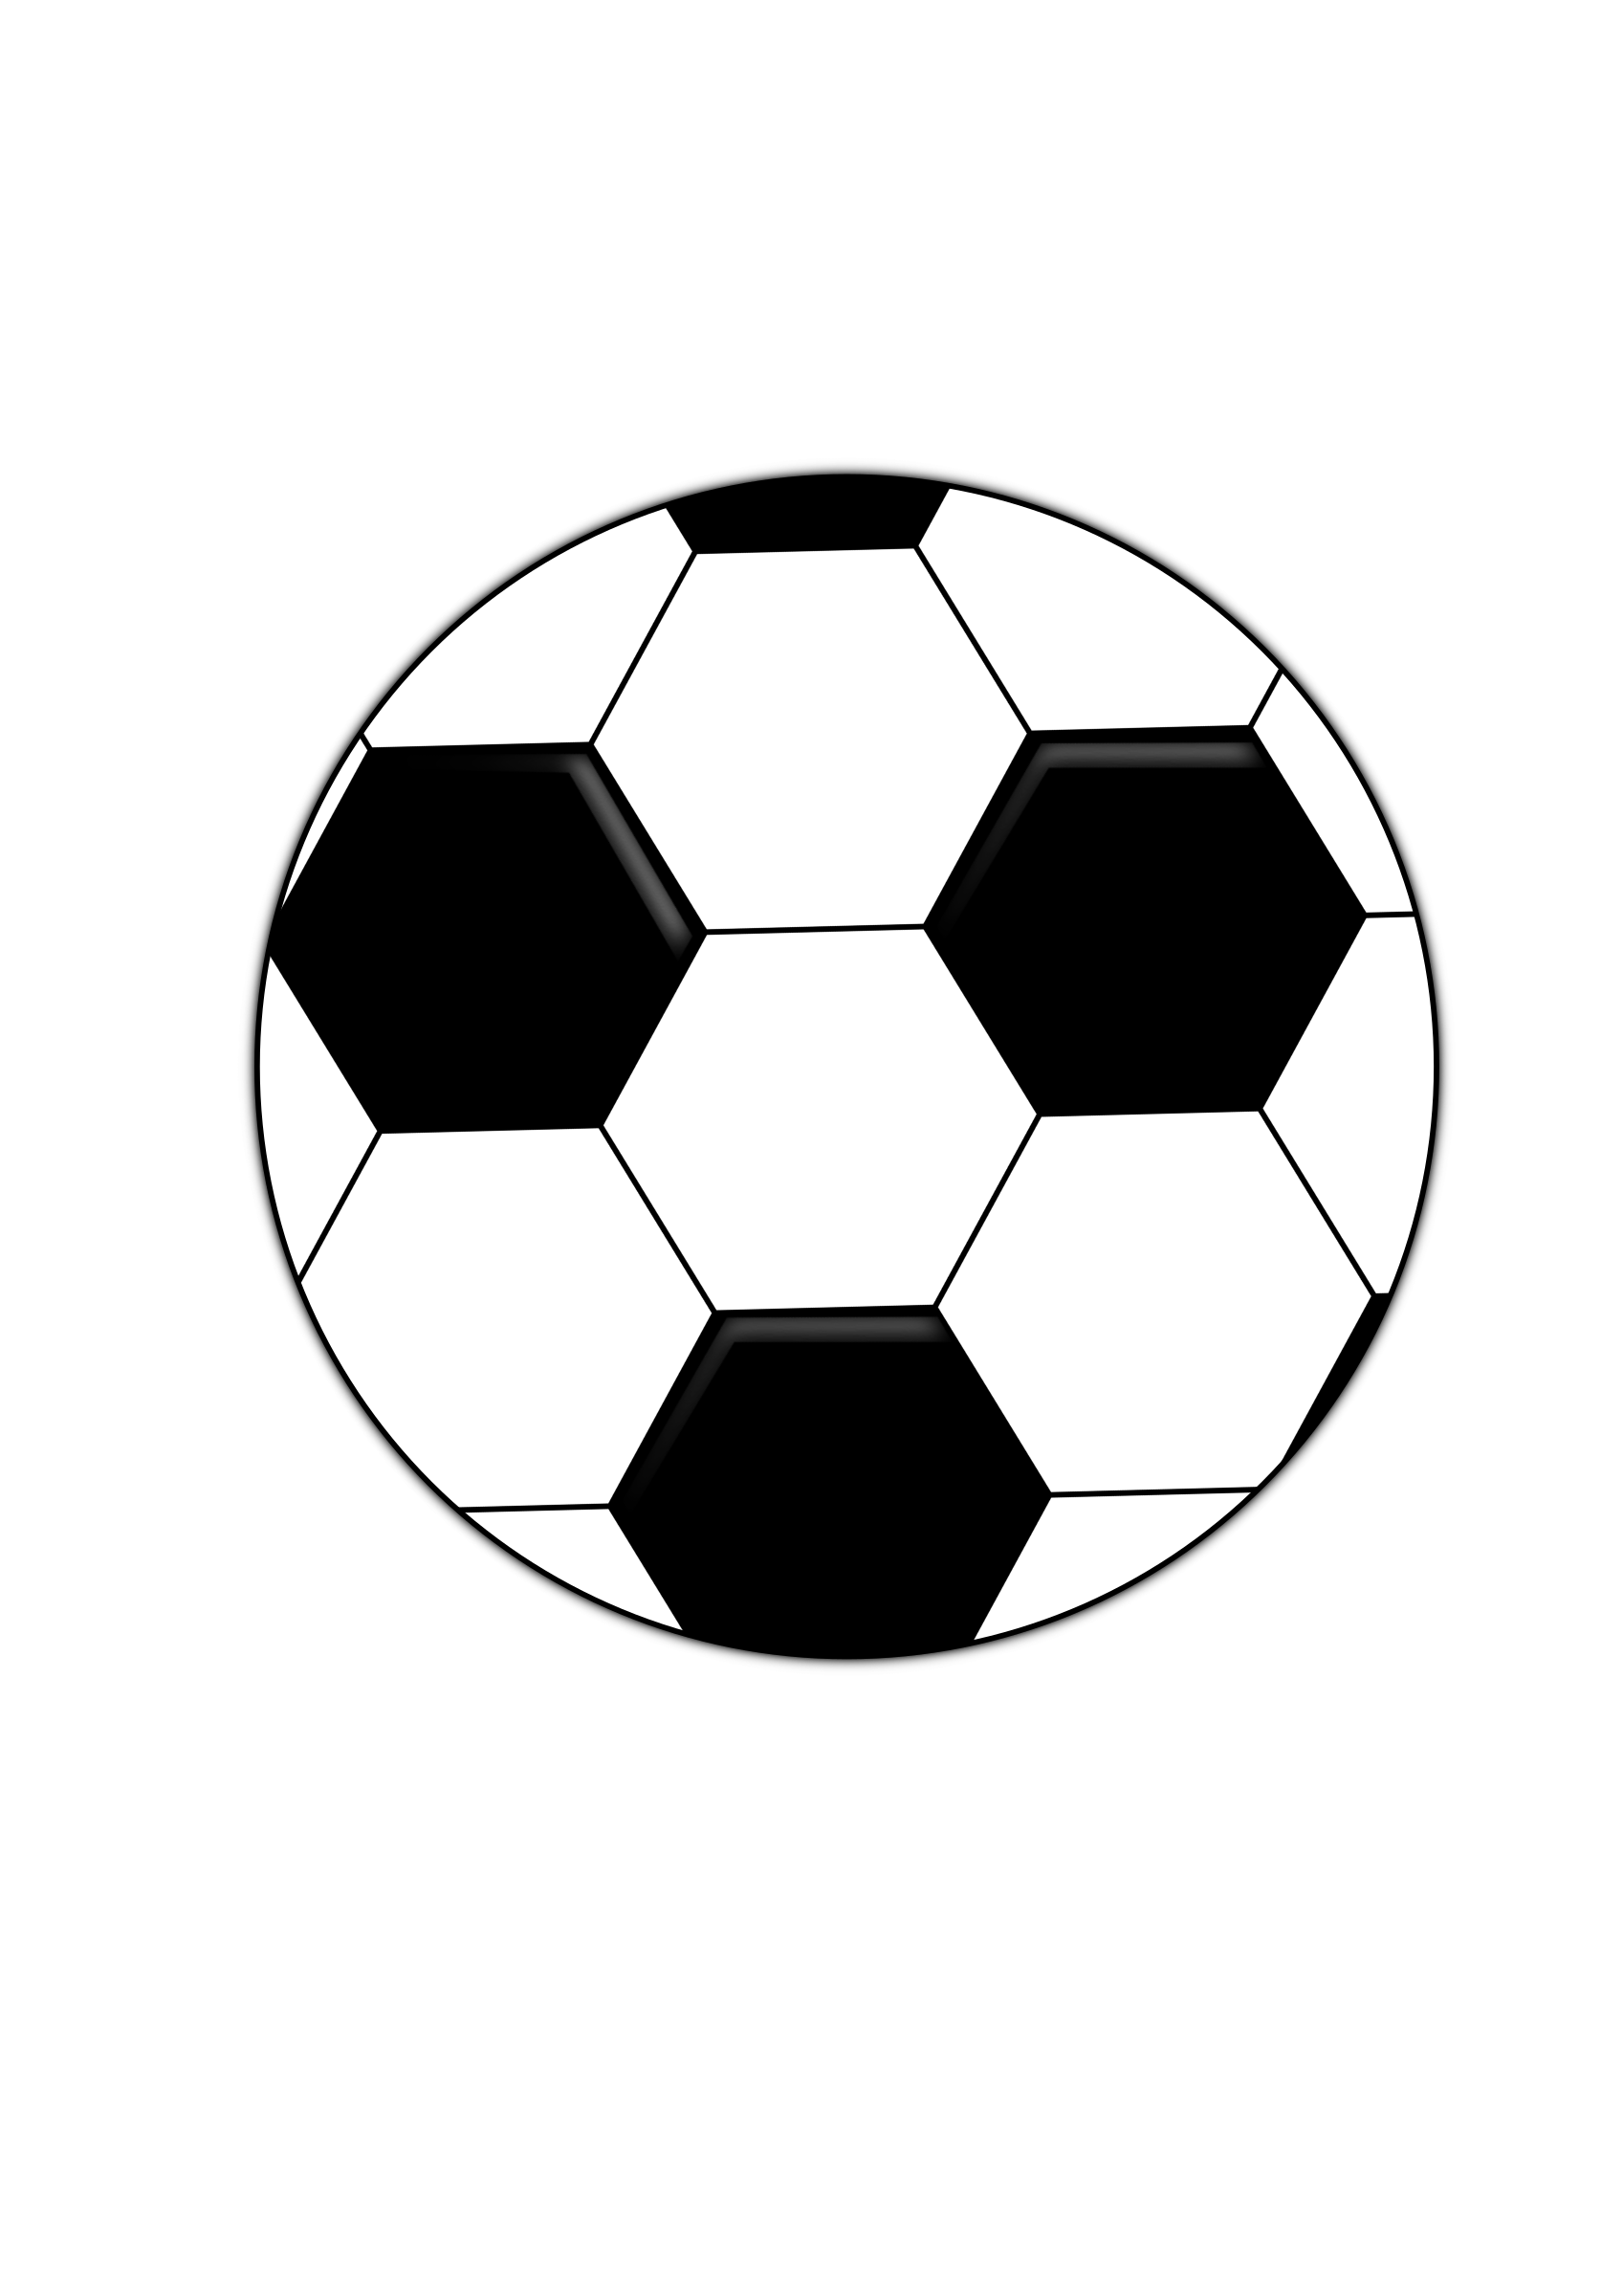 Soccer ball clipart small. Big image png